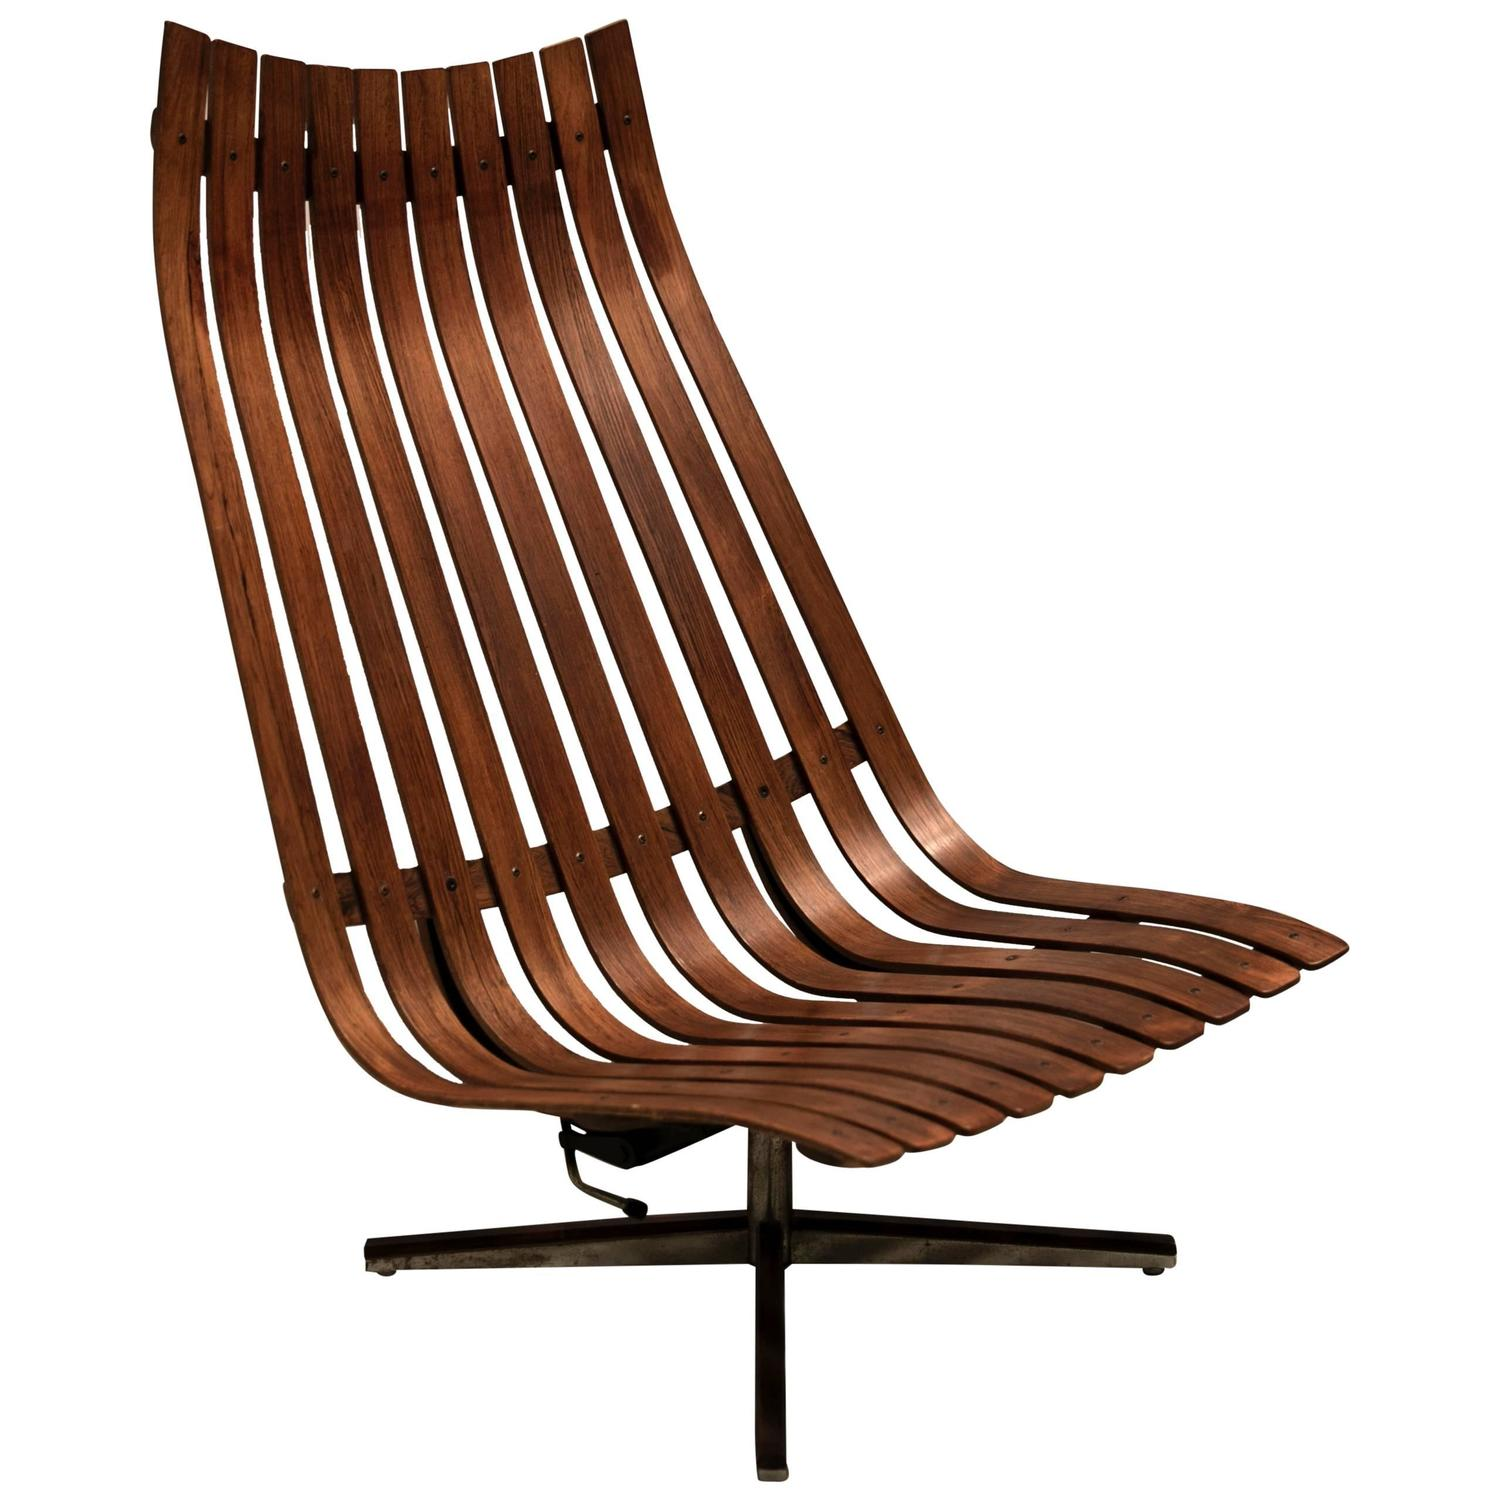 1960s Scandia Swivel Lounge Chair In Rosewood By Hans Brattrud For Hove Mob